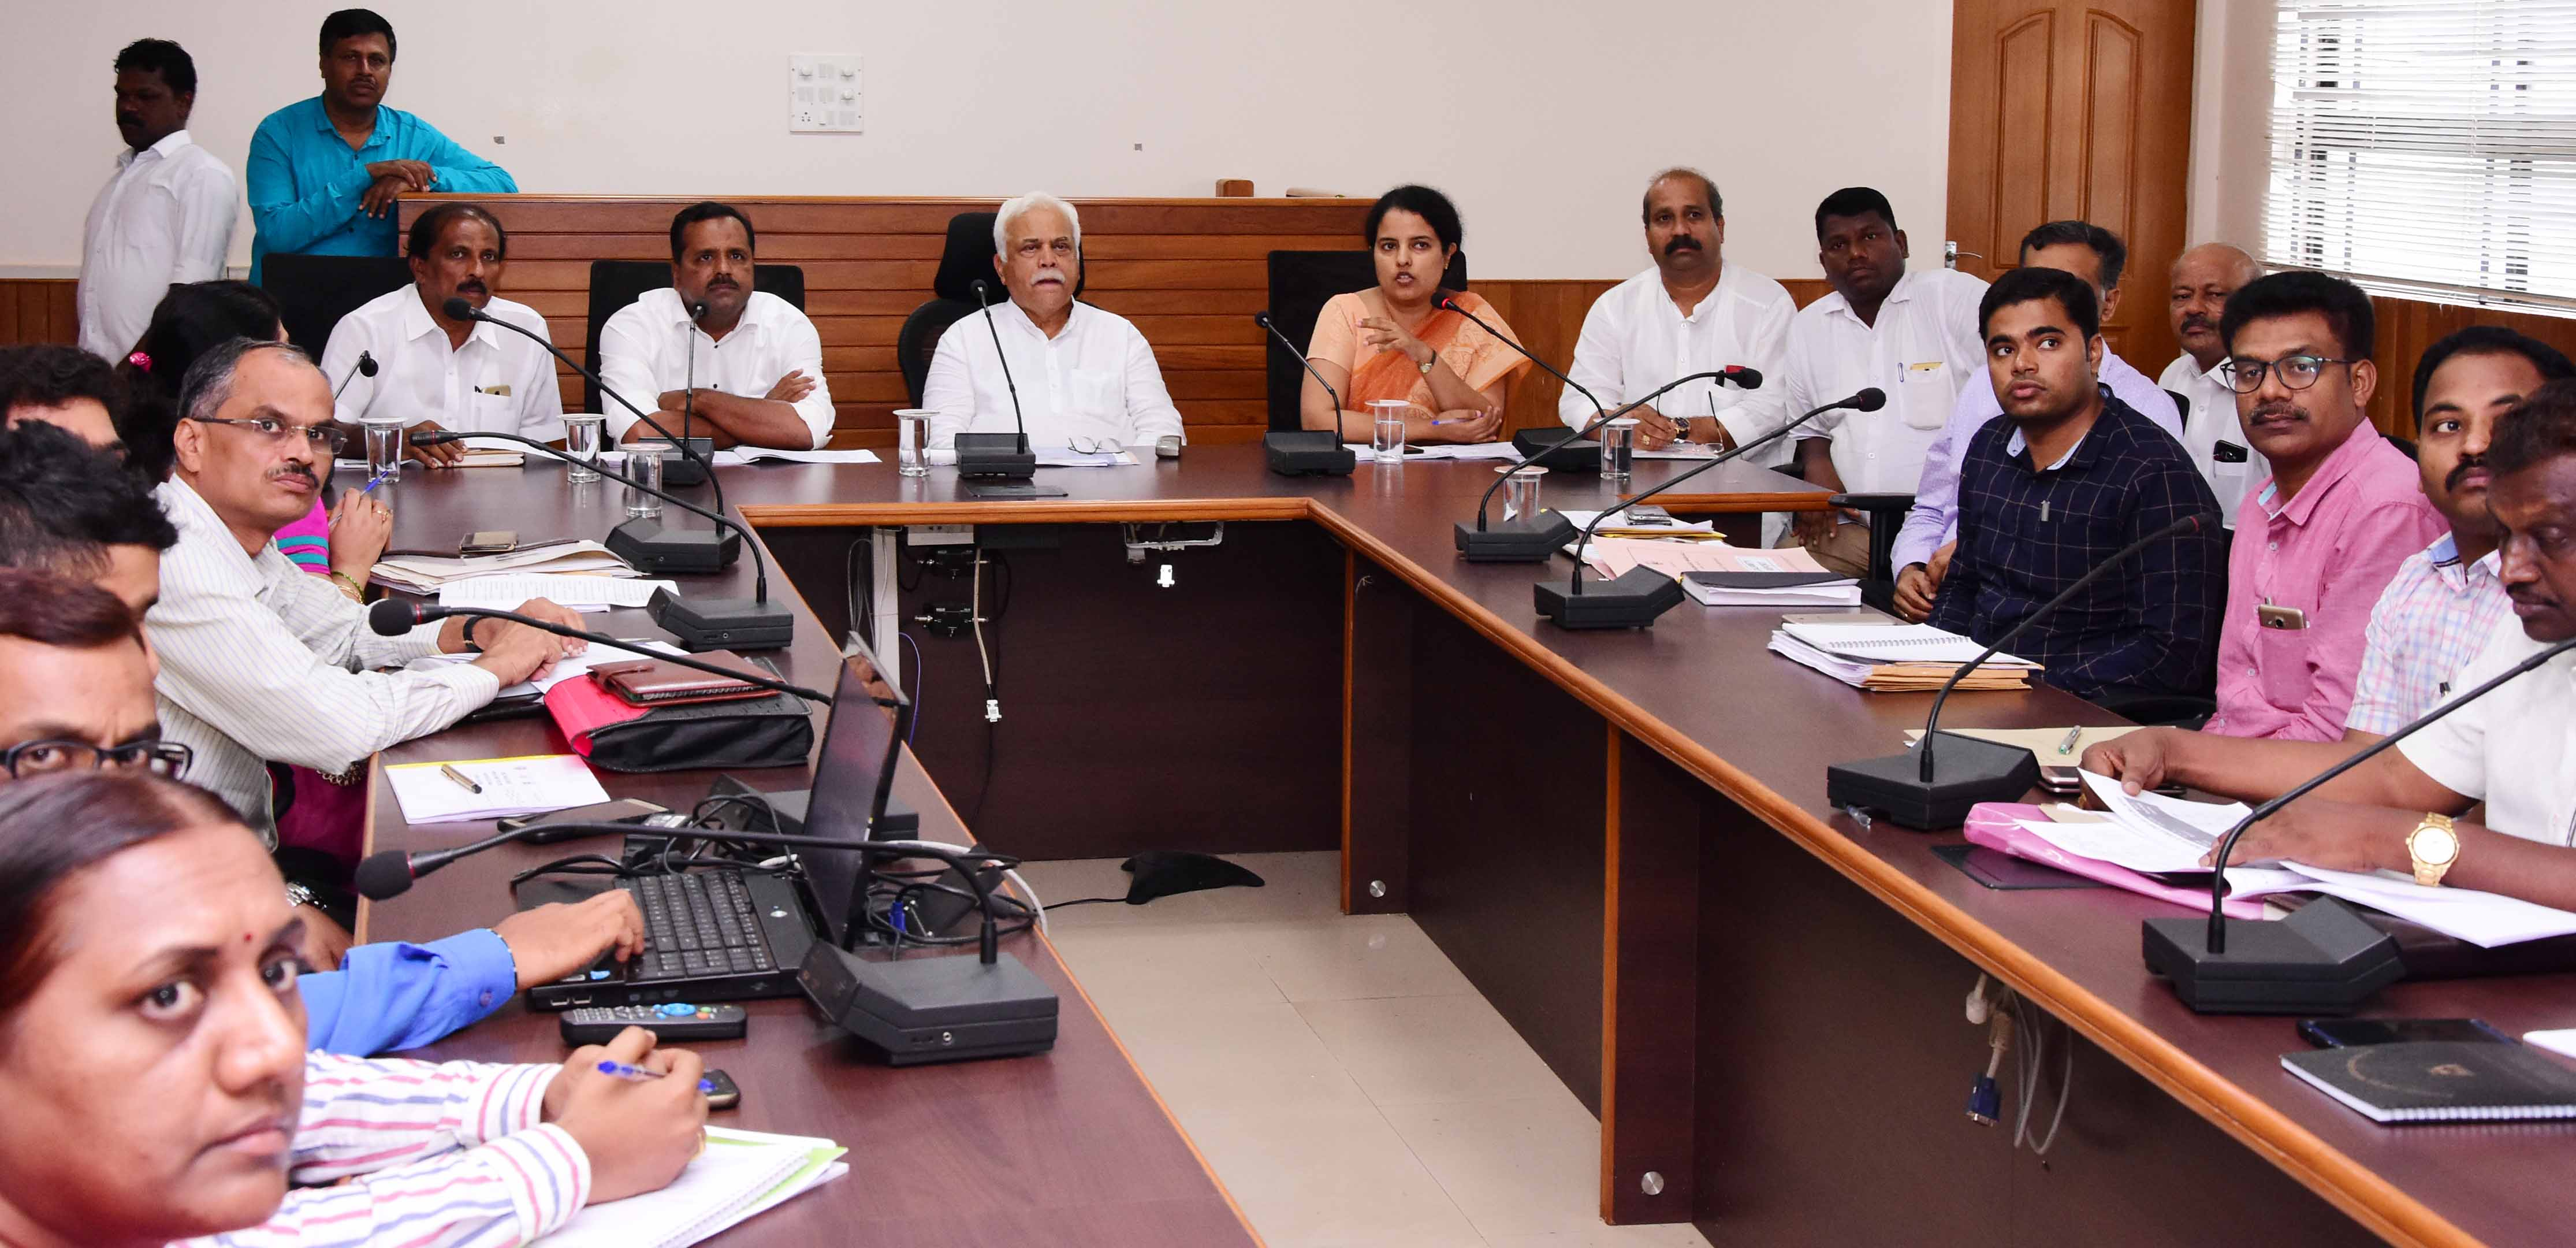 There should not shortage of natural calamity relief funds - R. V. Deshpande, Revenue Minster